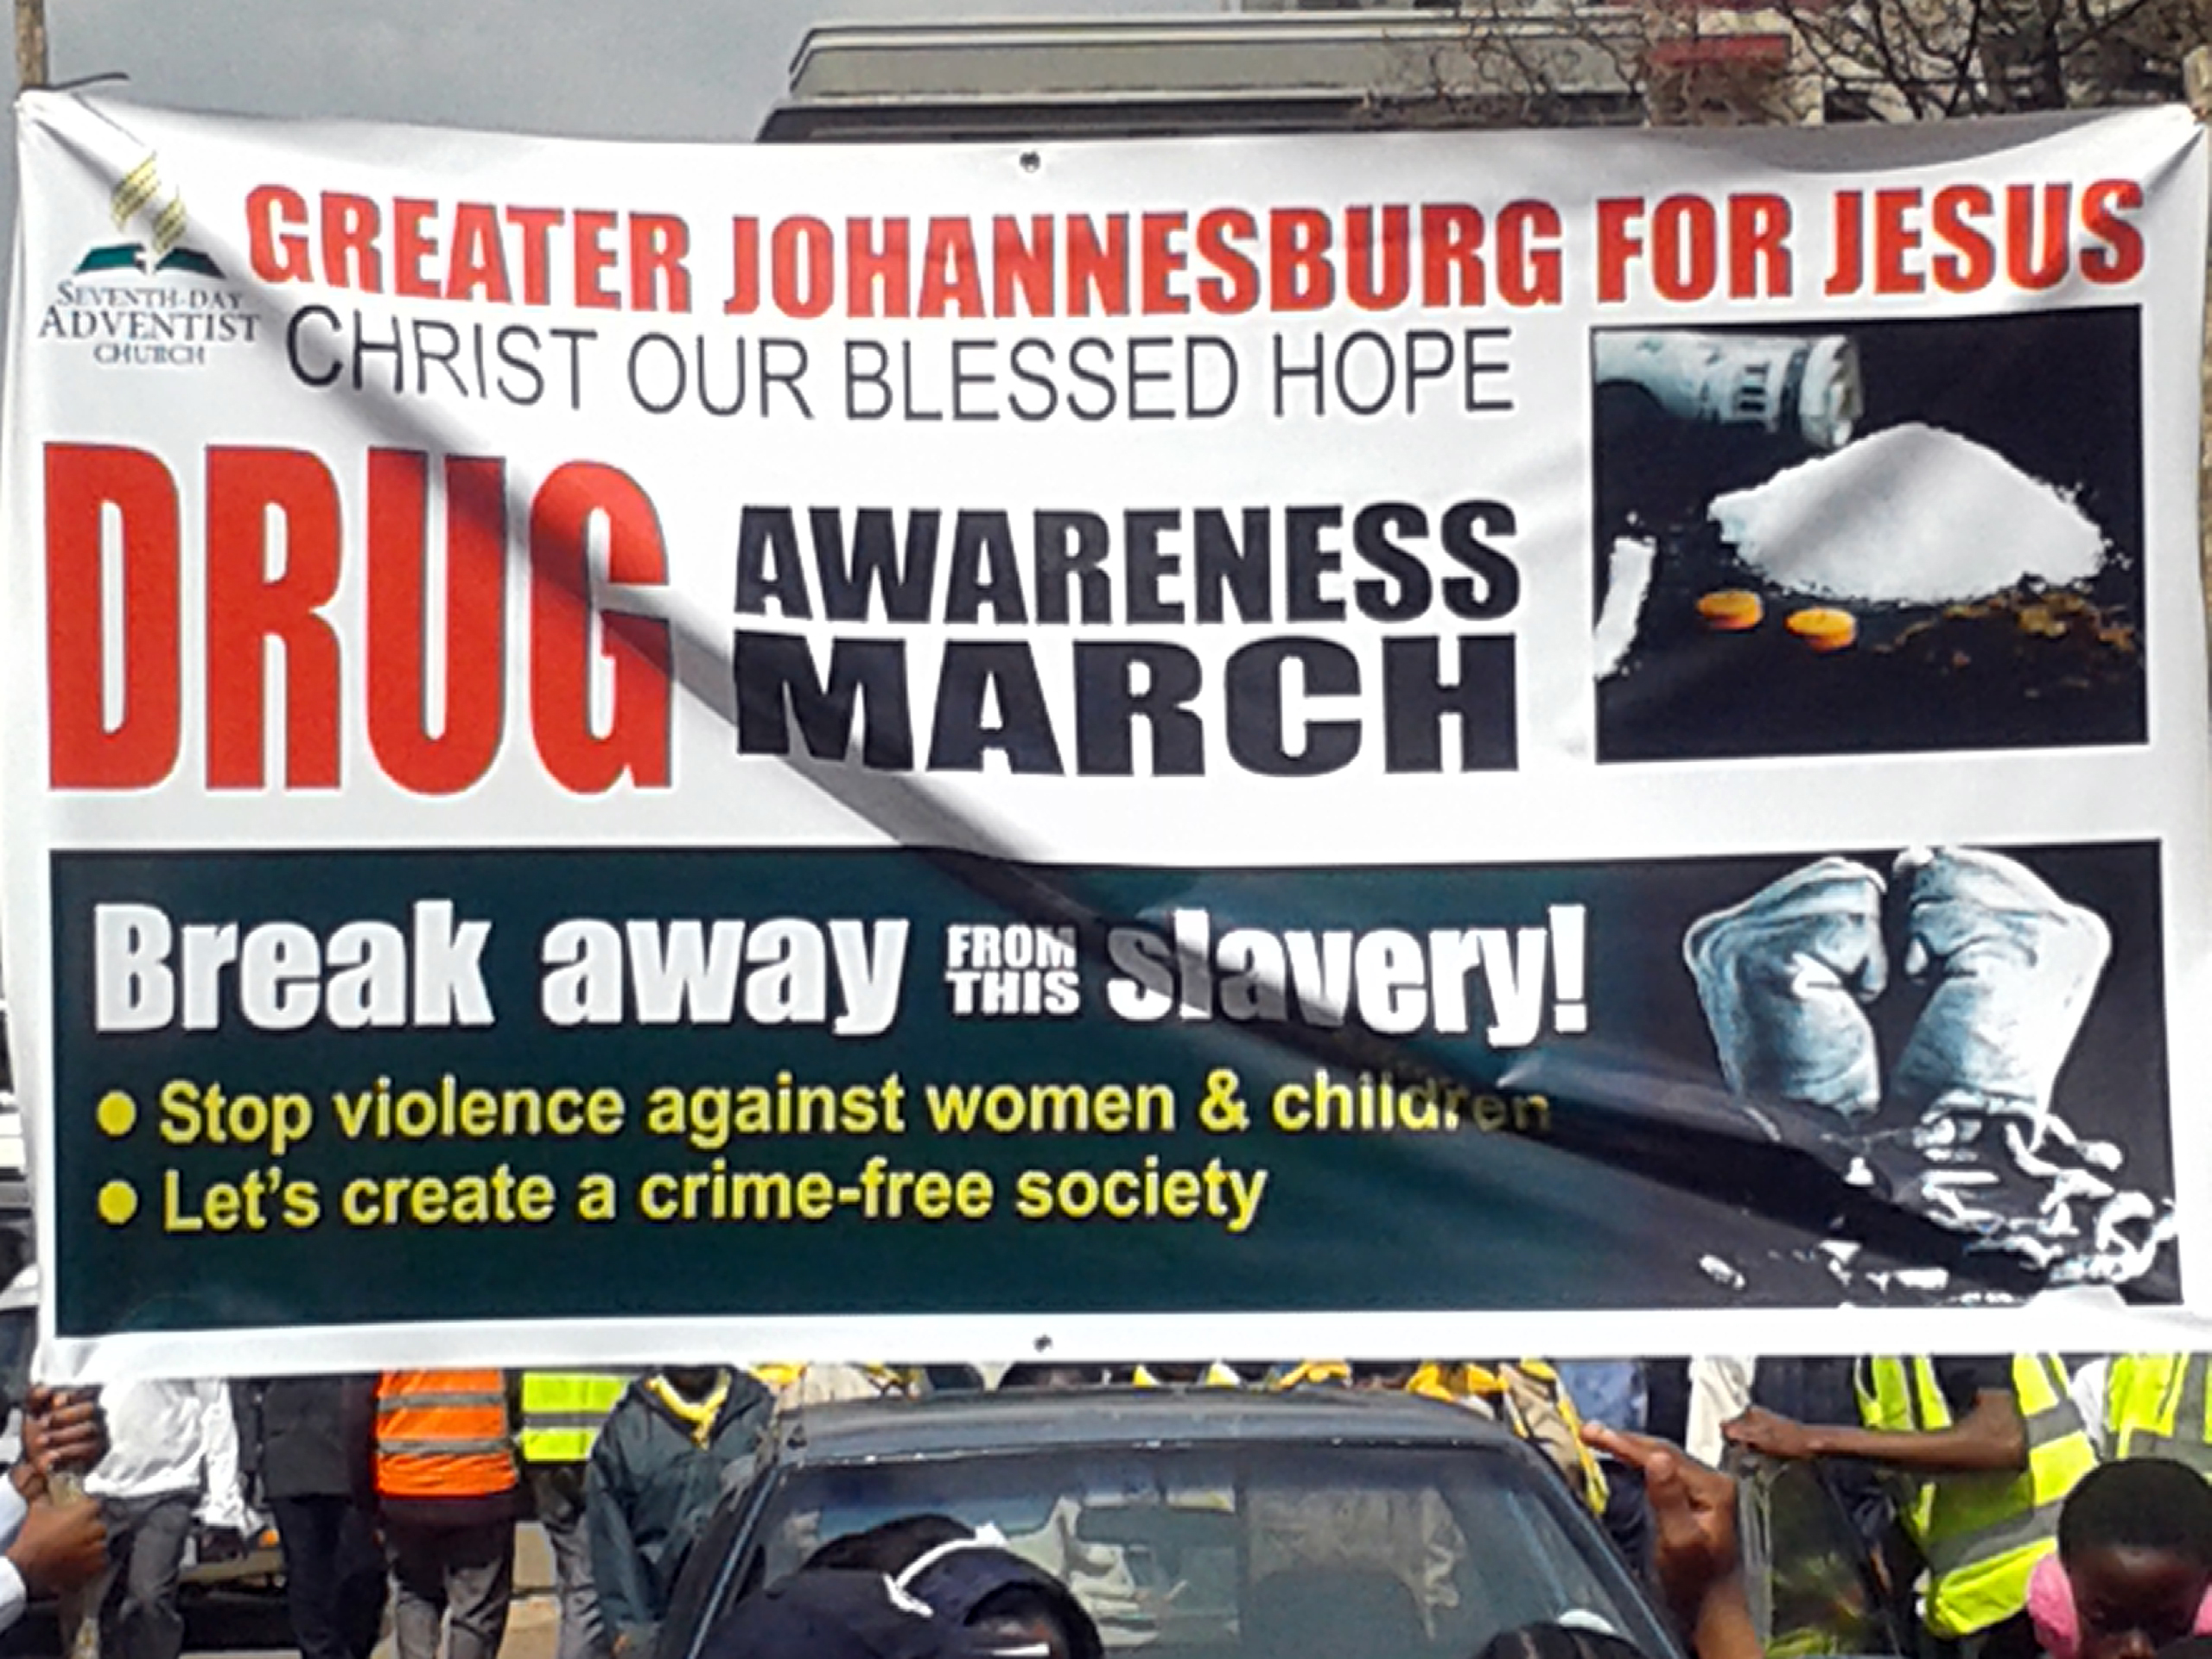 Anti-crime campaign led by the Seventh Day Adventist Church in South Africa, Sept. 6, 2015. (photo by Thuso Khumalo)